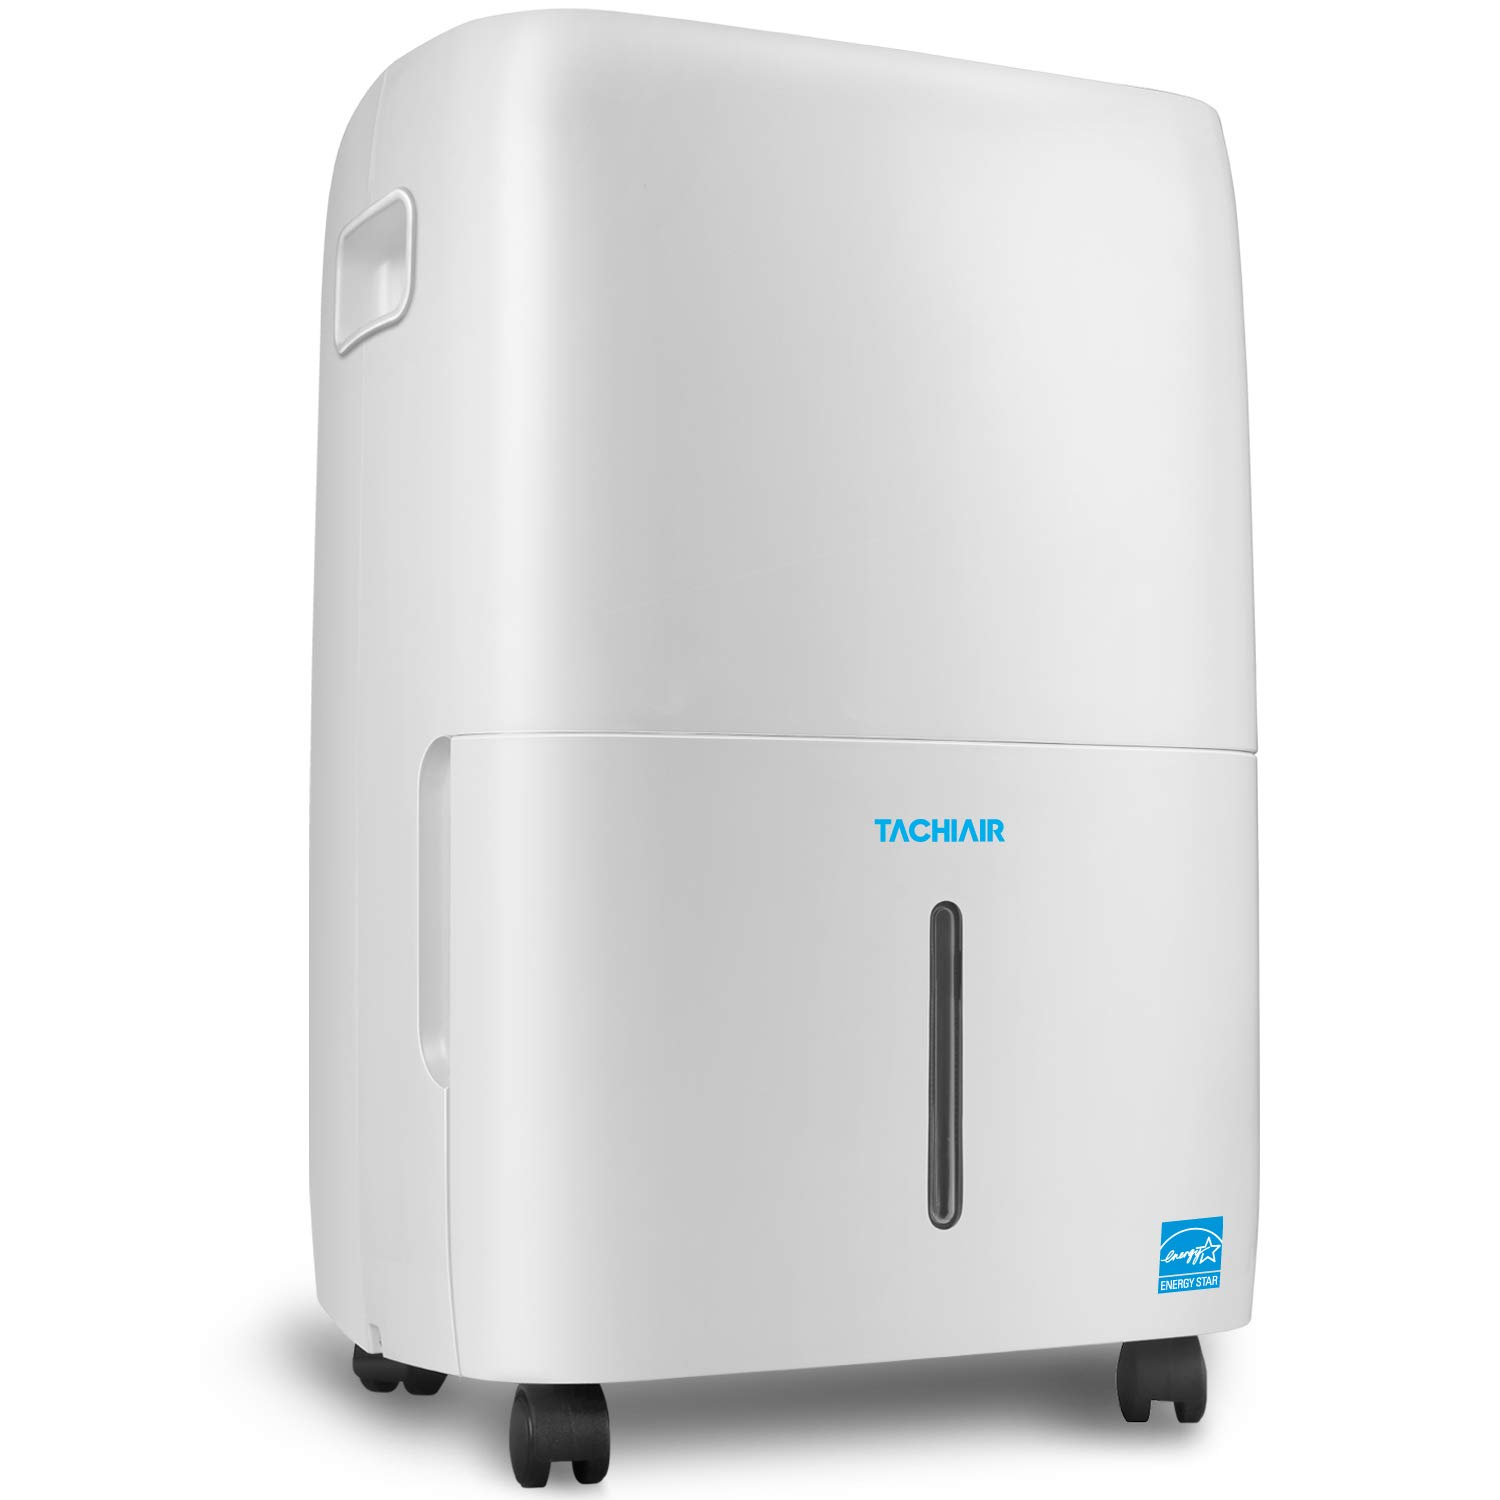 TACHIAIR 70-Pint Energy Star Quiet Portable Dehumidifier with Built-in Pump for RV Basement&Large Rooms up to 4500sq.ft, Intelligent Humidistat,Auto Shutoff/Restart,24hr Continuous Drainage,White